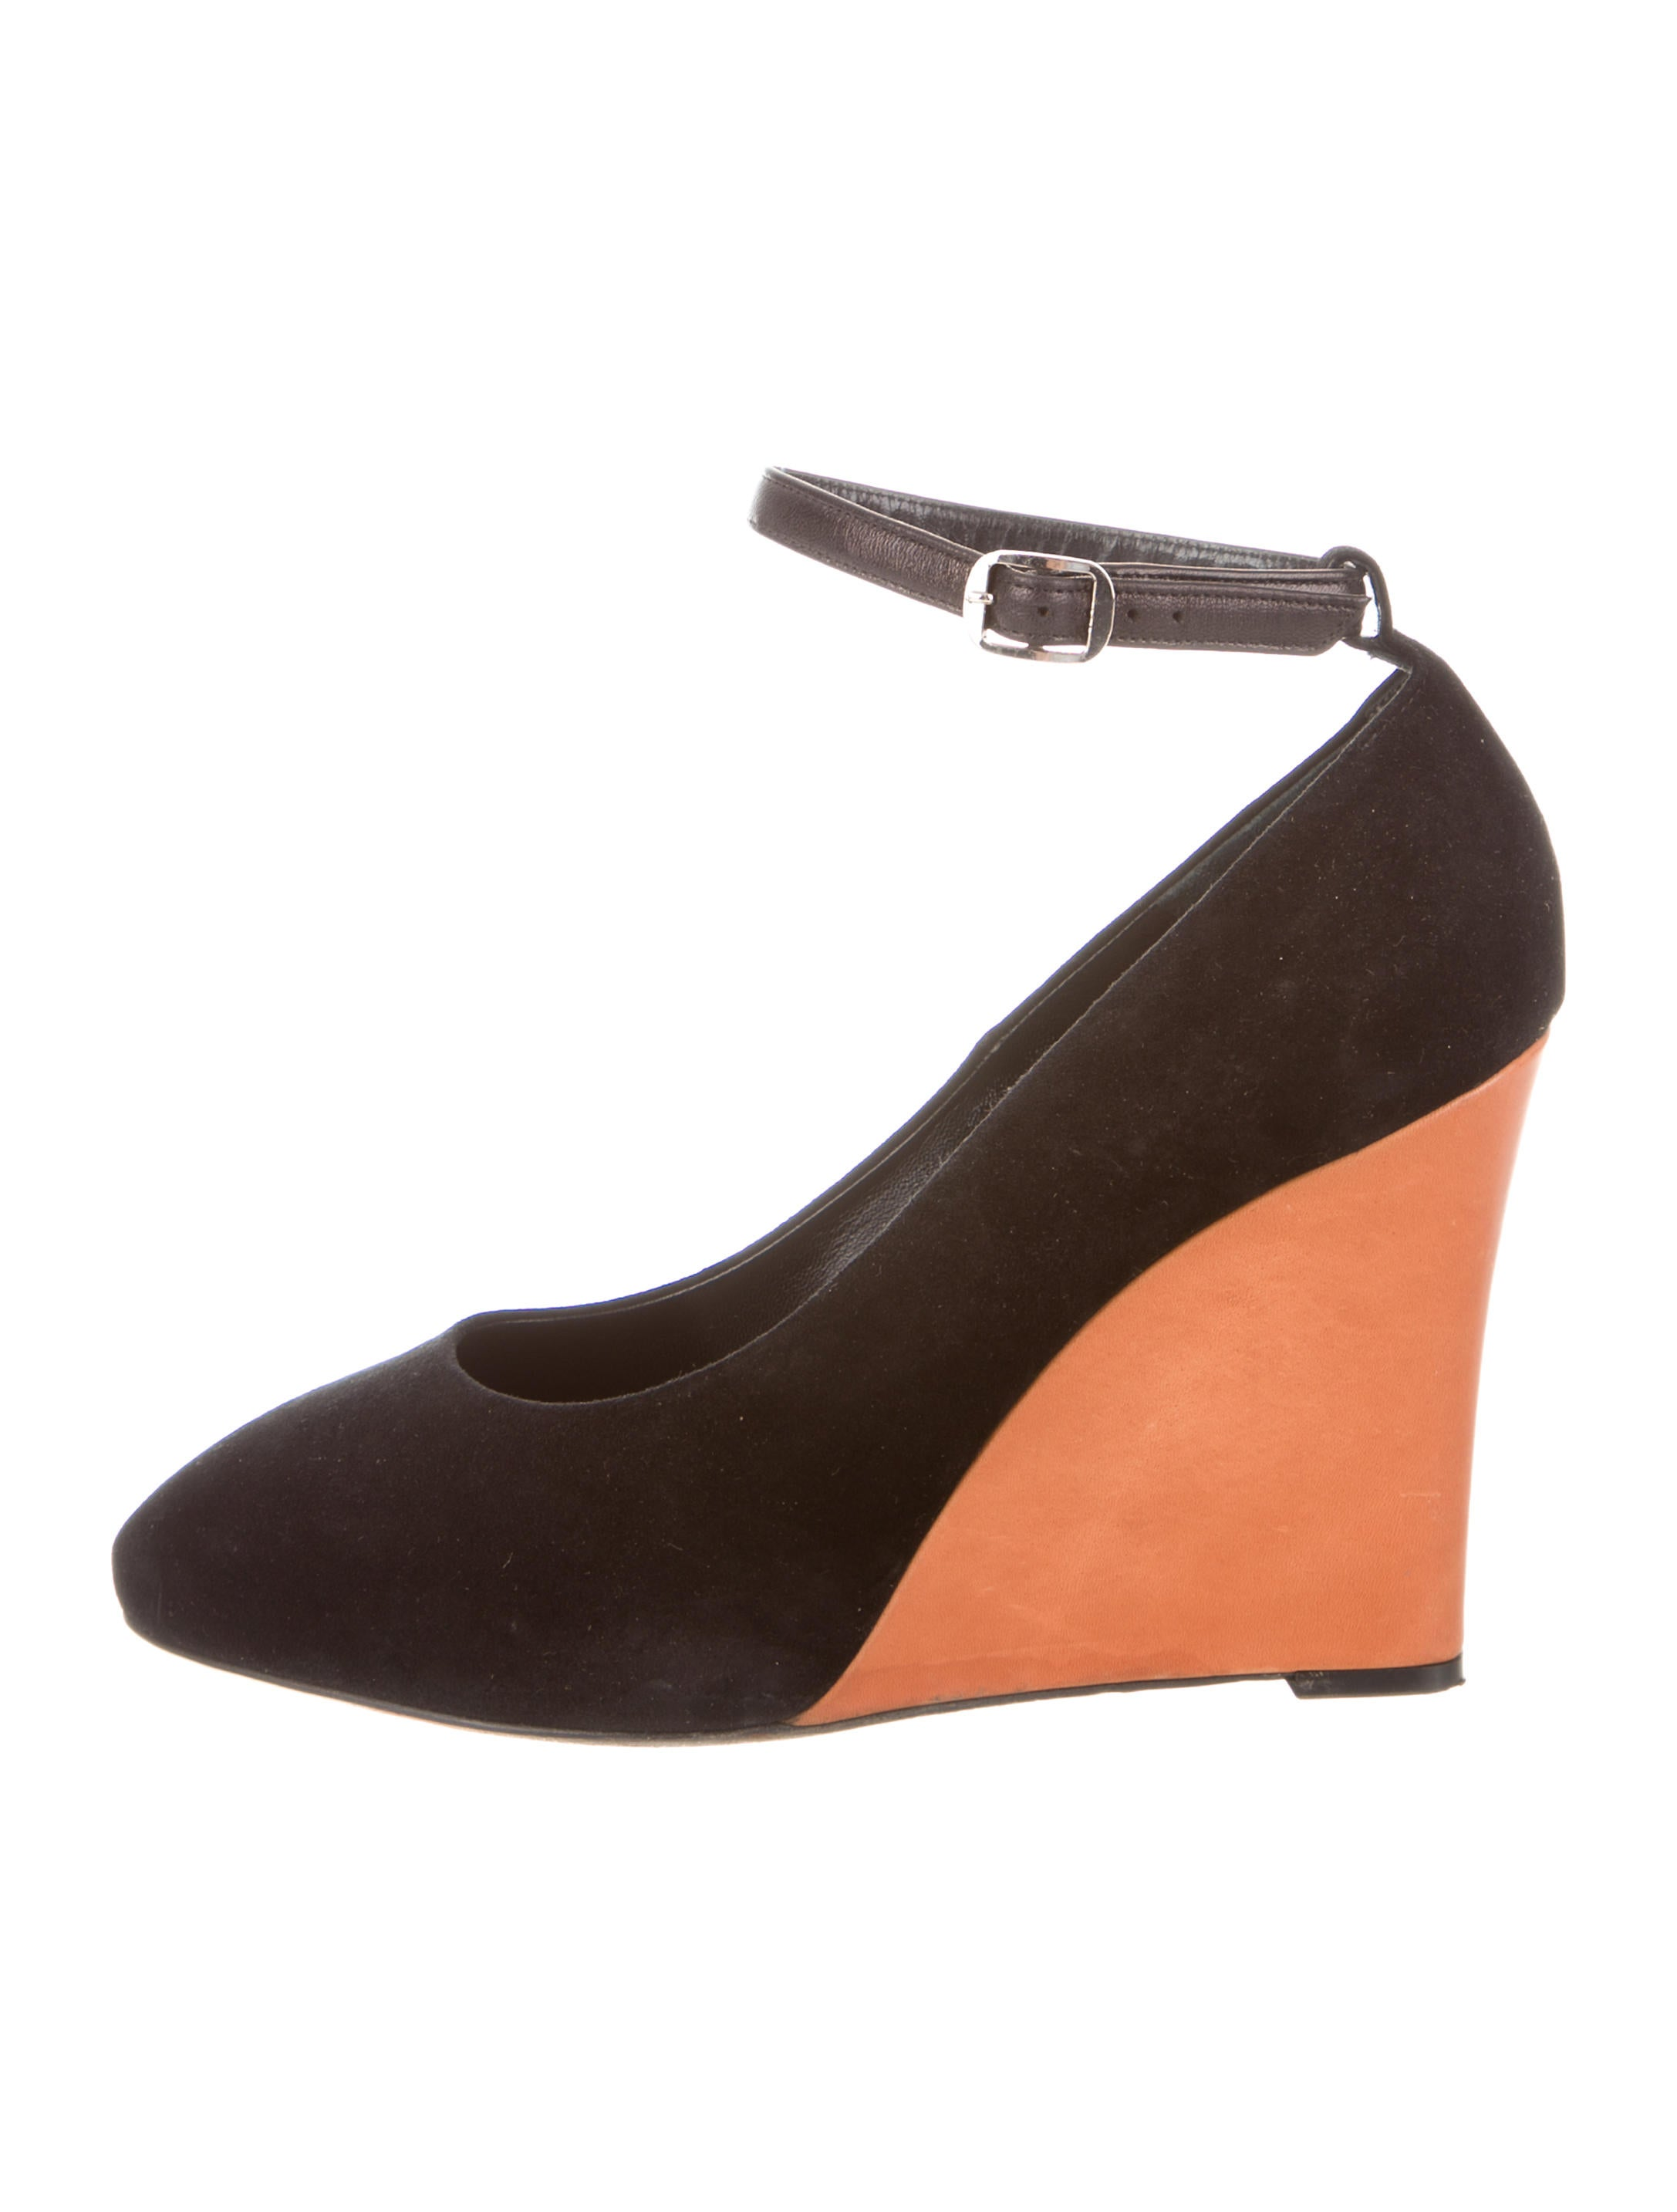 c 233 line suede pointed toe wedges shoes cel33920 the